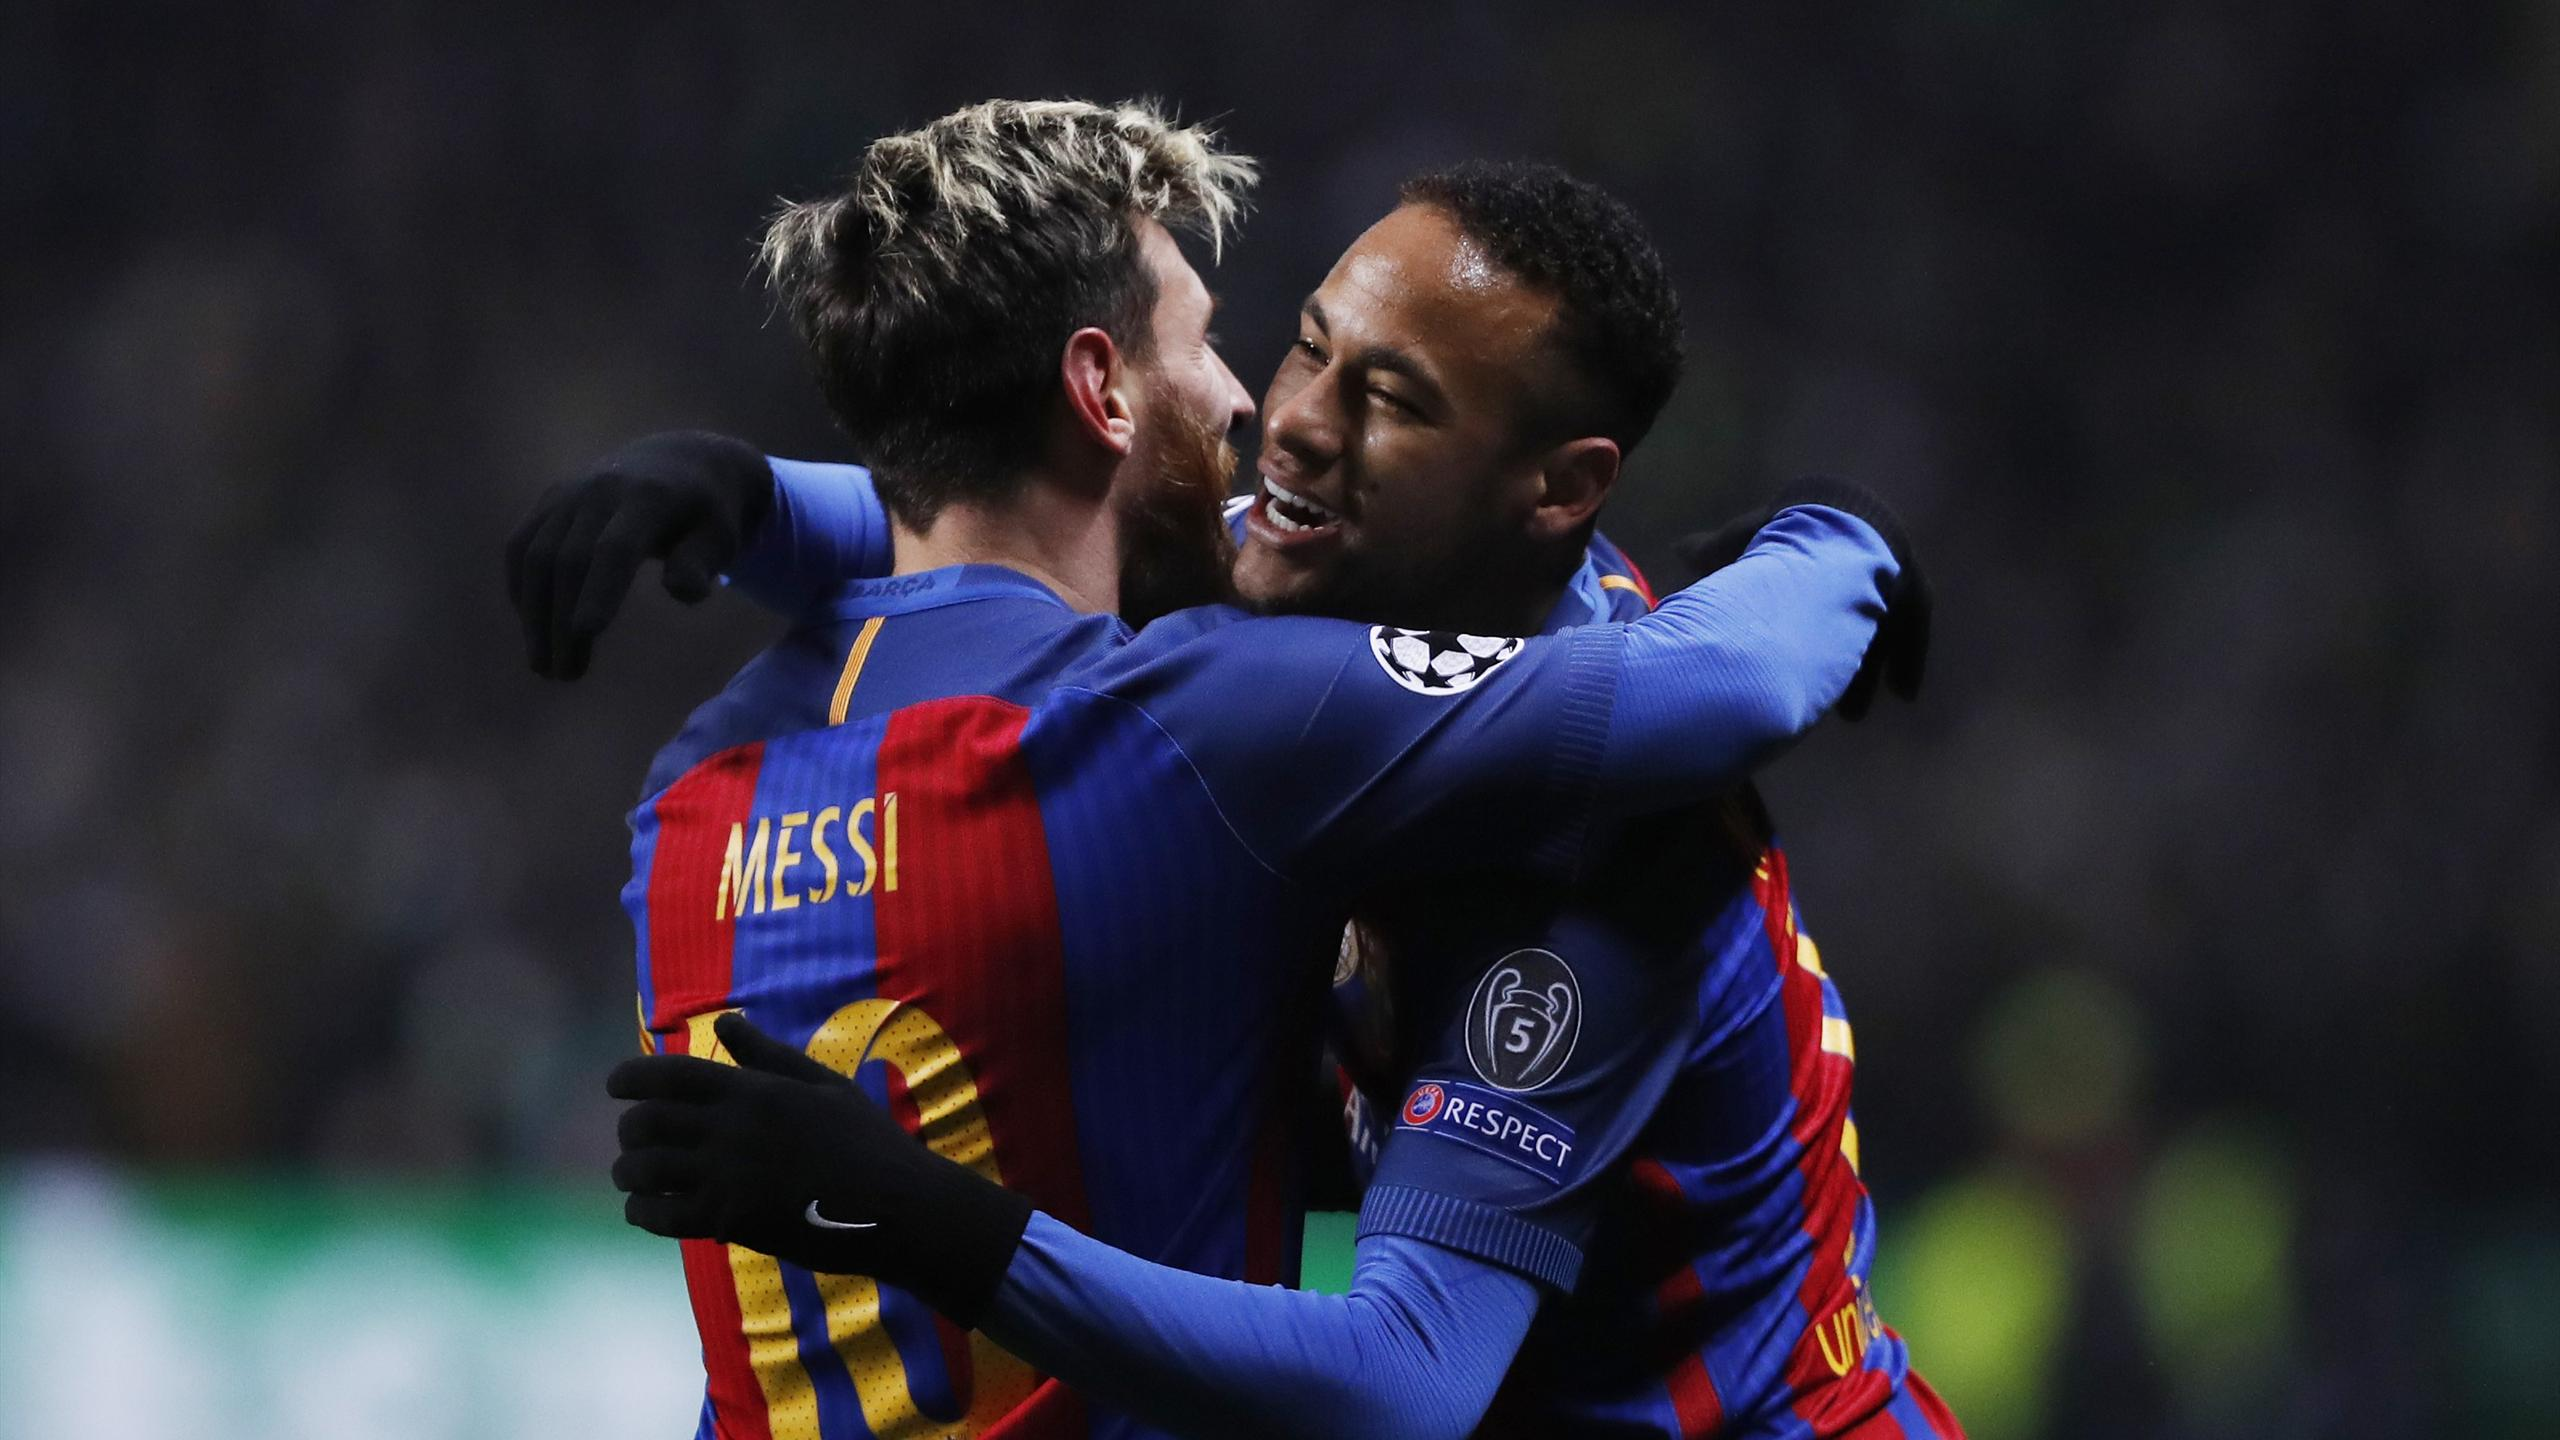 Barcelona's Lionel Messi and Neymar embrace